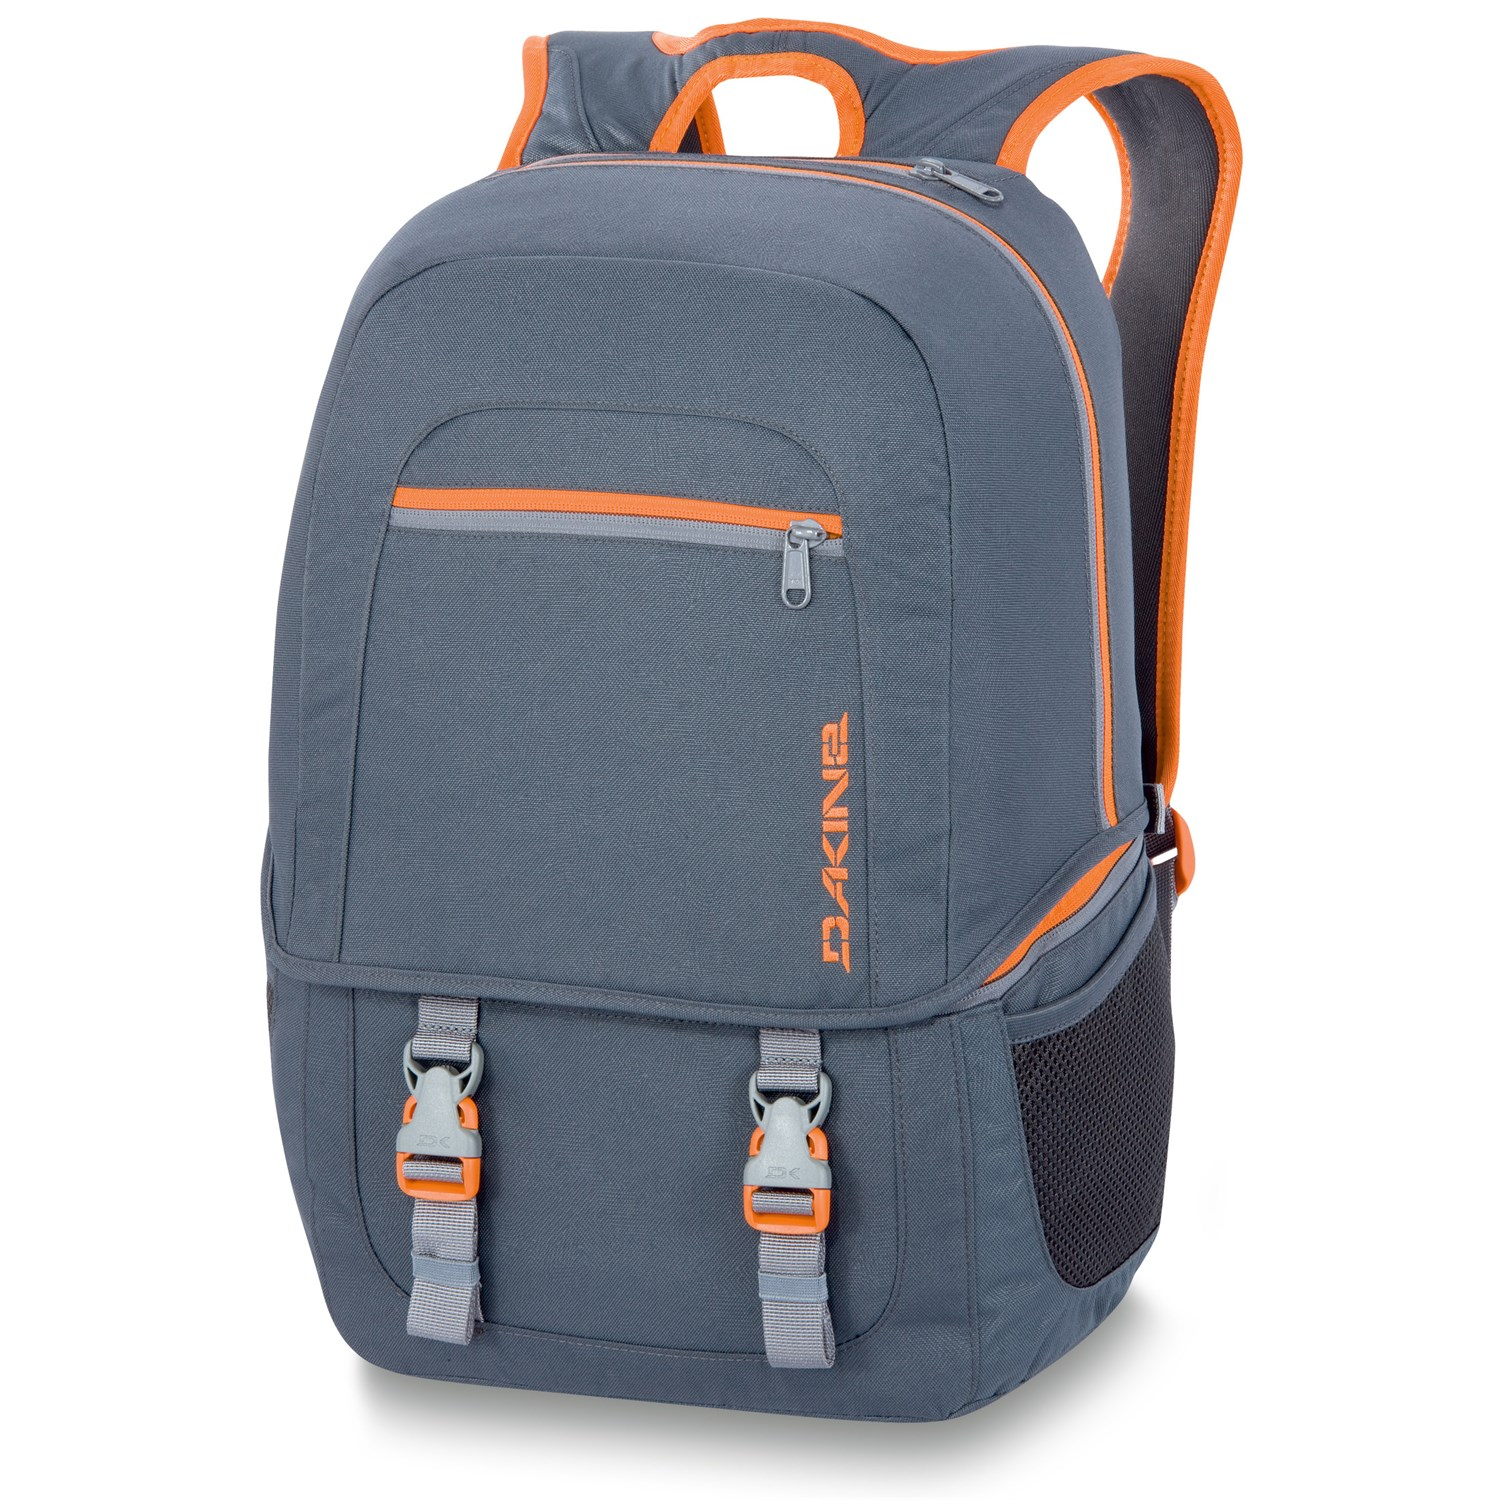 DaKine Coast Cooler Backpack | evo outlet